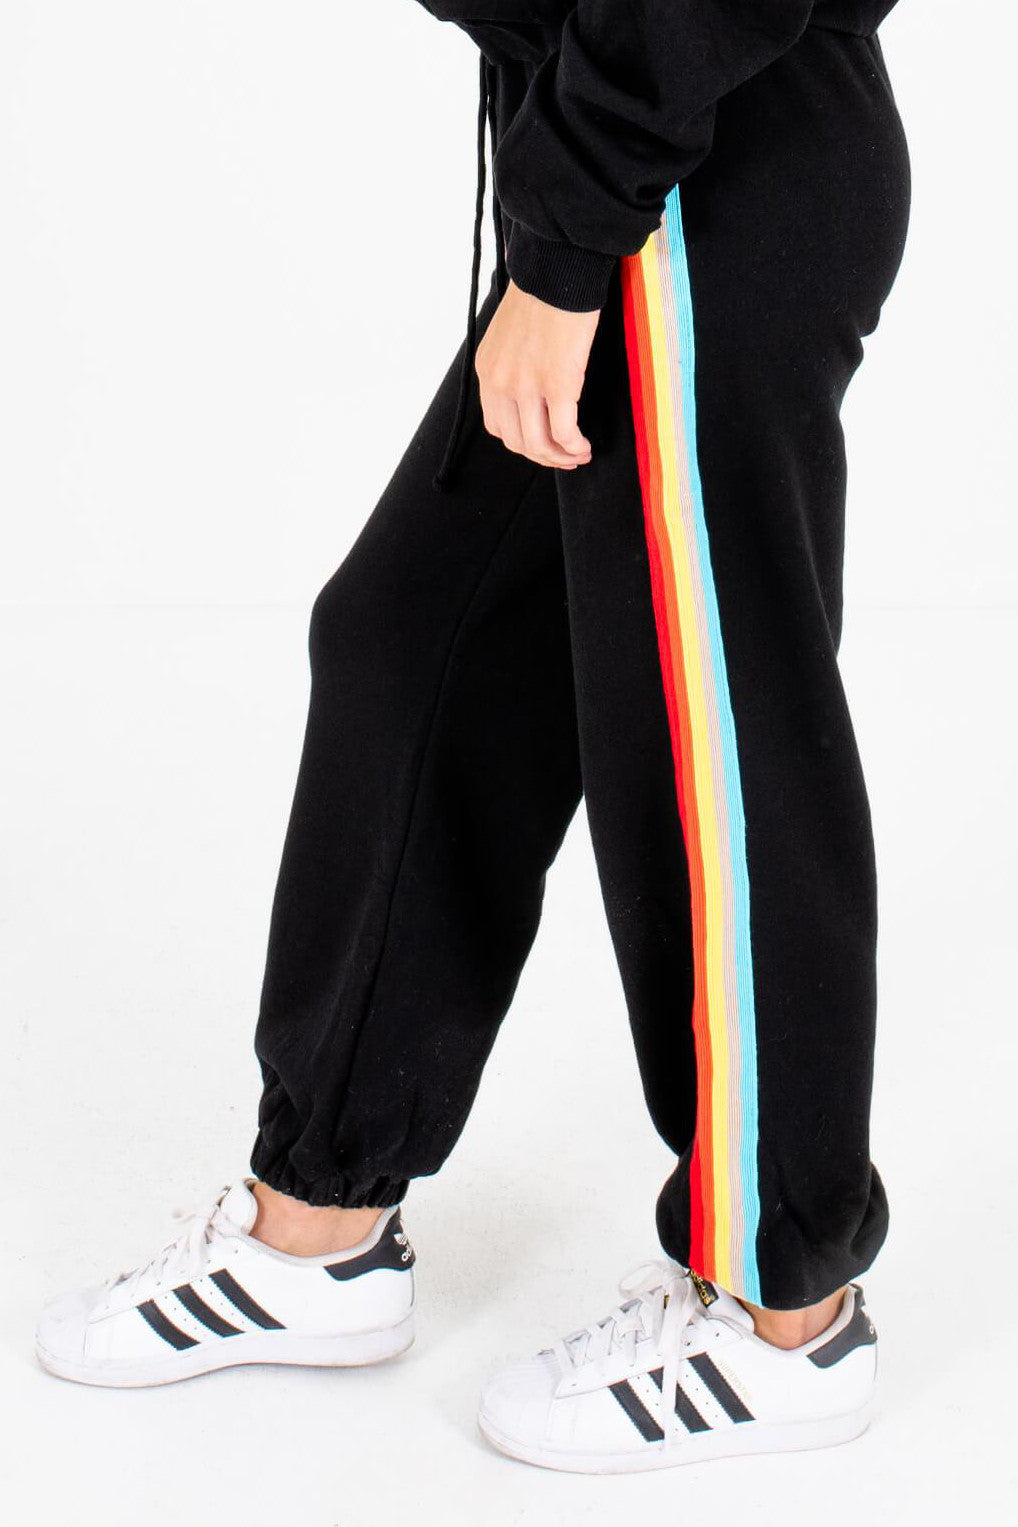 Black Multicolored Striped Boutique Jogger Pants for Women